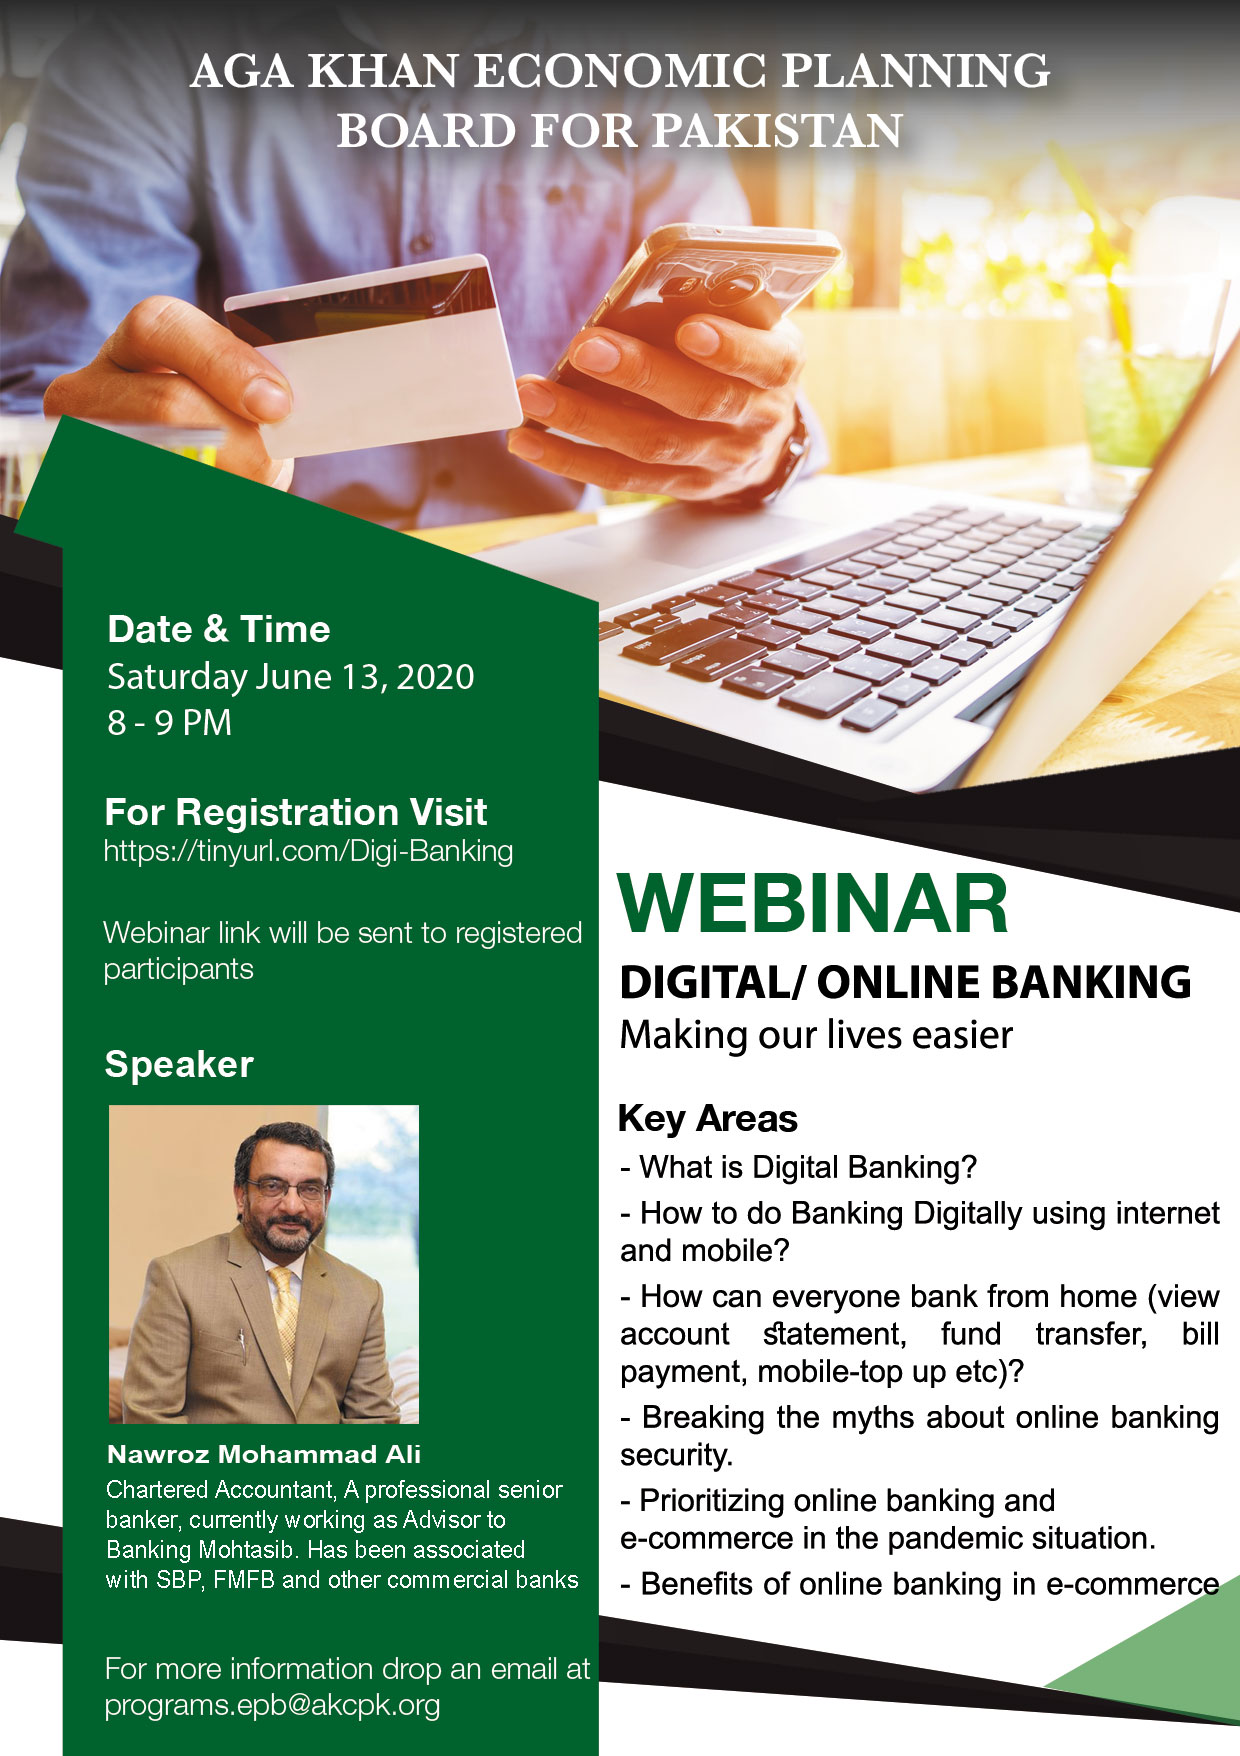 Digital/ Online Banking: Making our Lives Easier